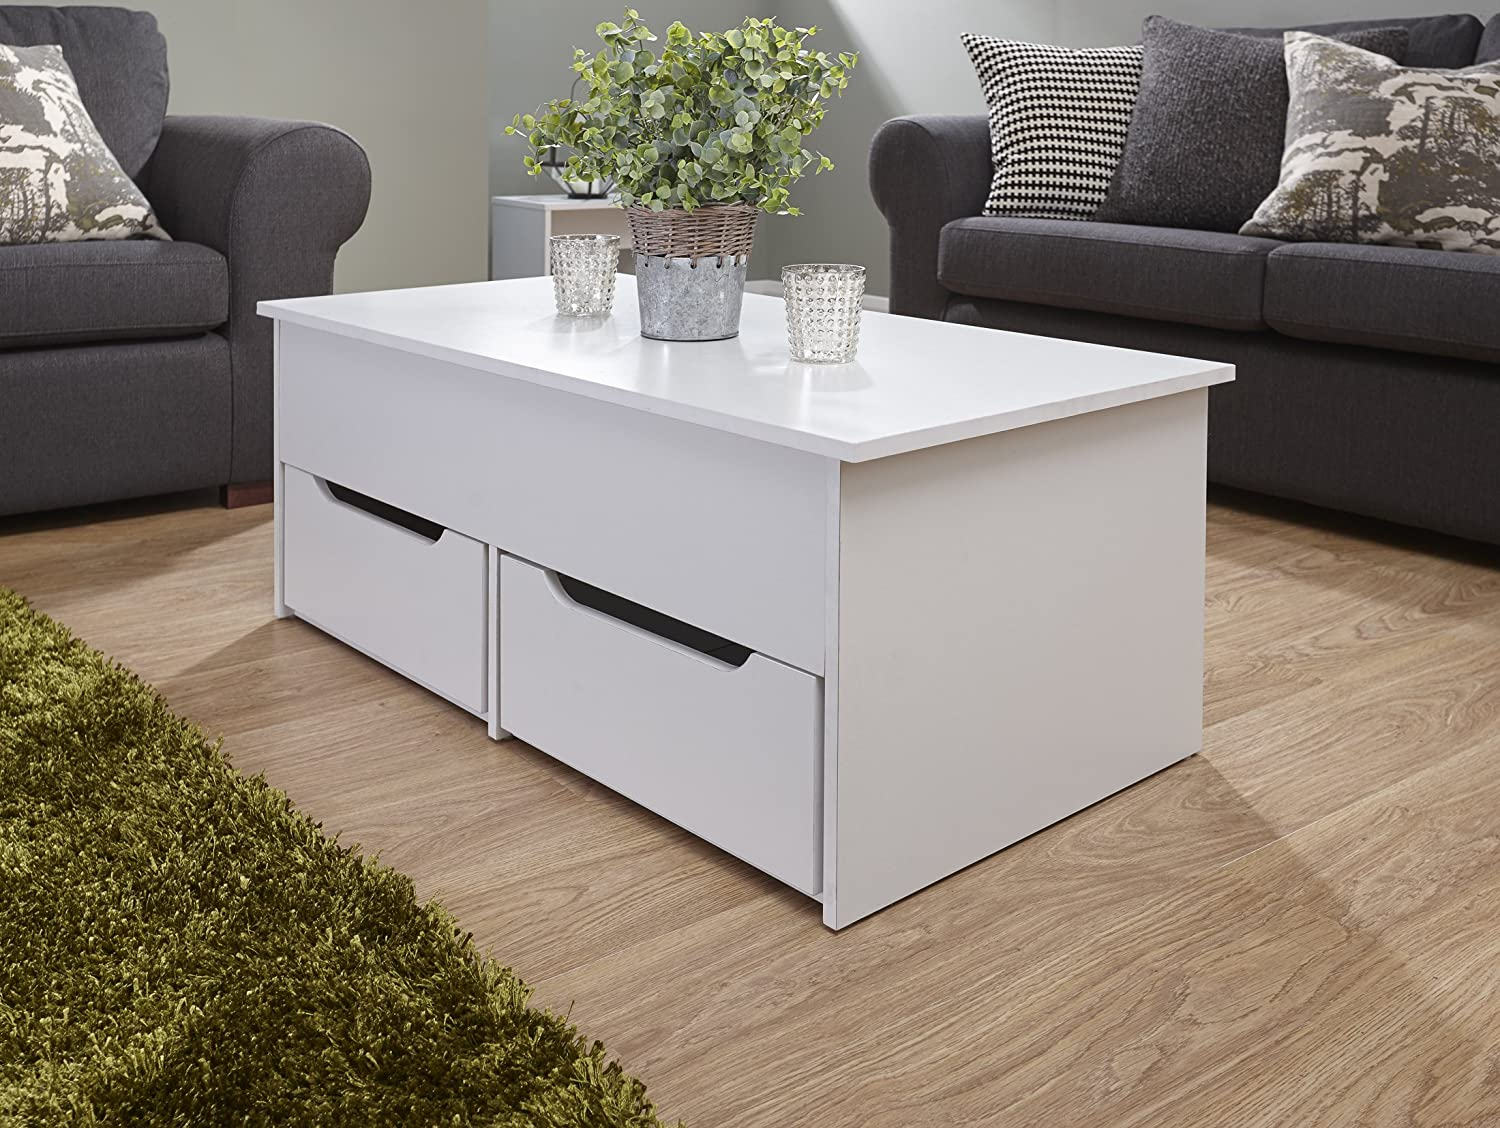 Ultimate Two Drawer Lift Up Storage Coffee Table White Amazon Co Uk Kitchen Home